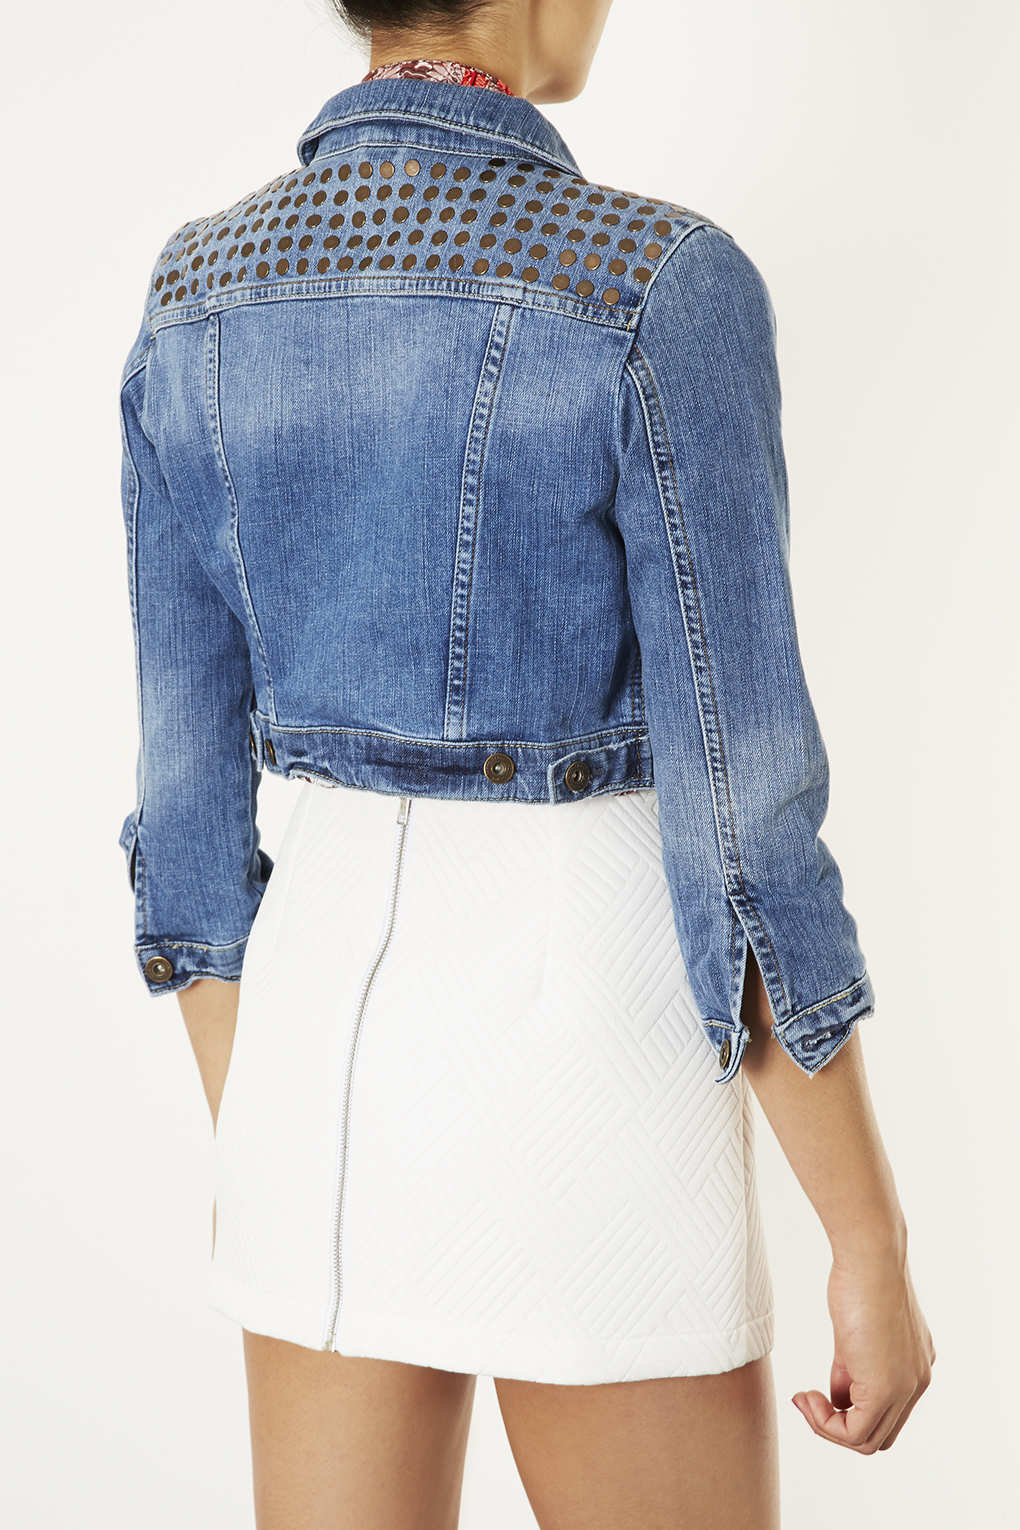 53d5263396 Lyst - TOPSHOP Moto Stud Cropped Denim Jacket in Blue